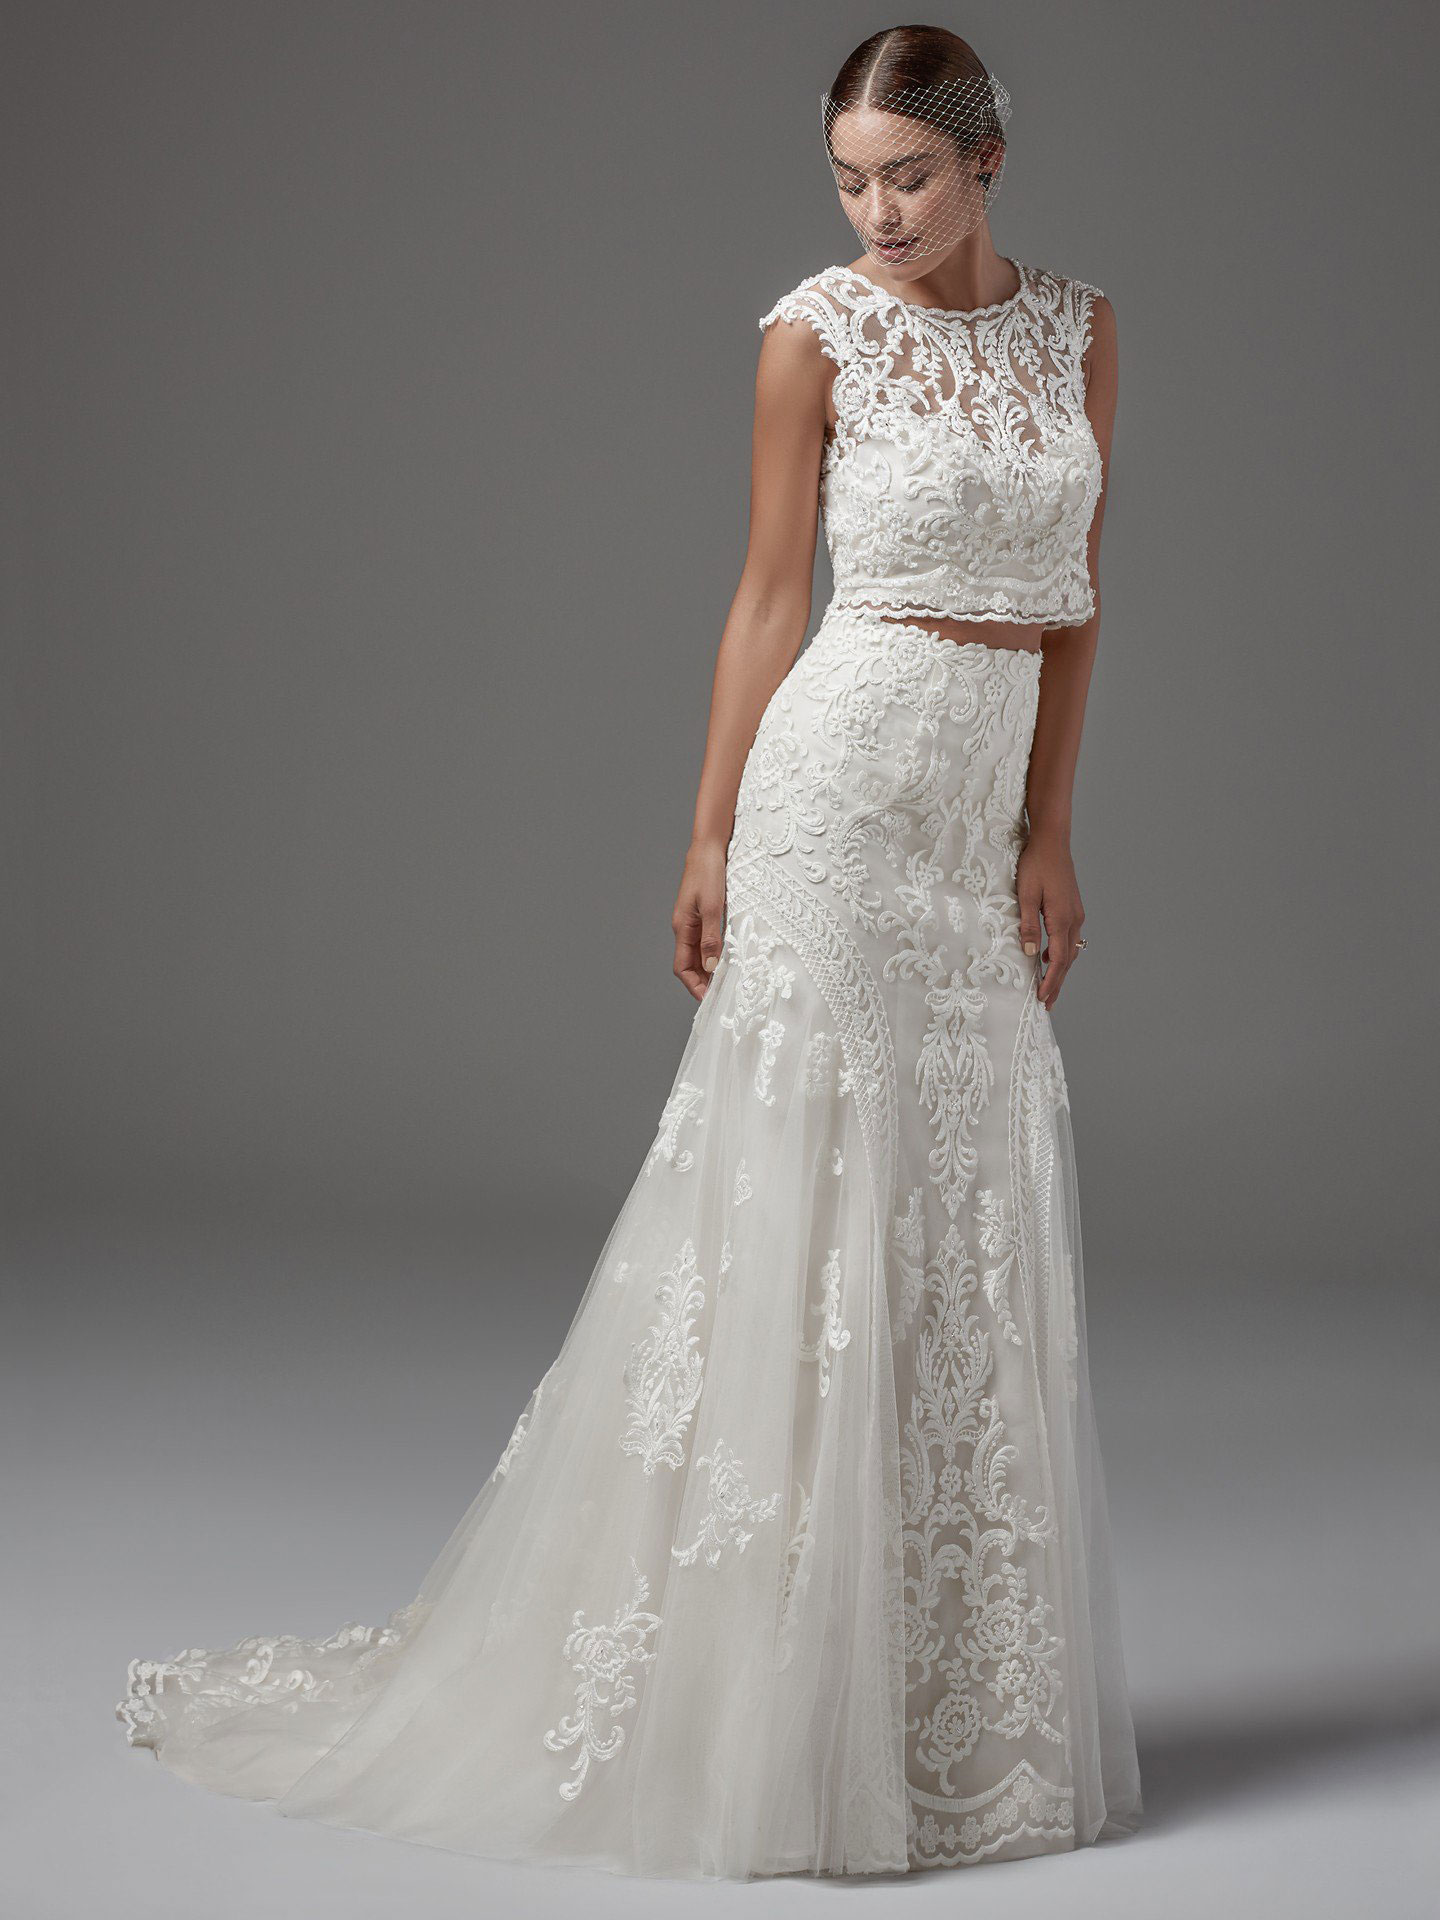 Sottero &#038; Midgley <br> Channing